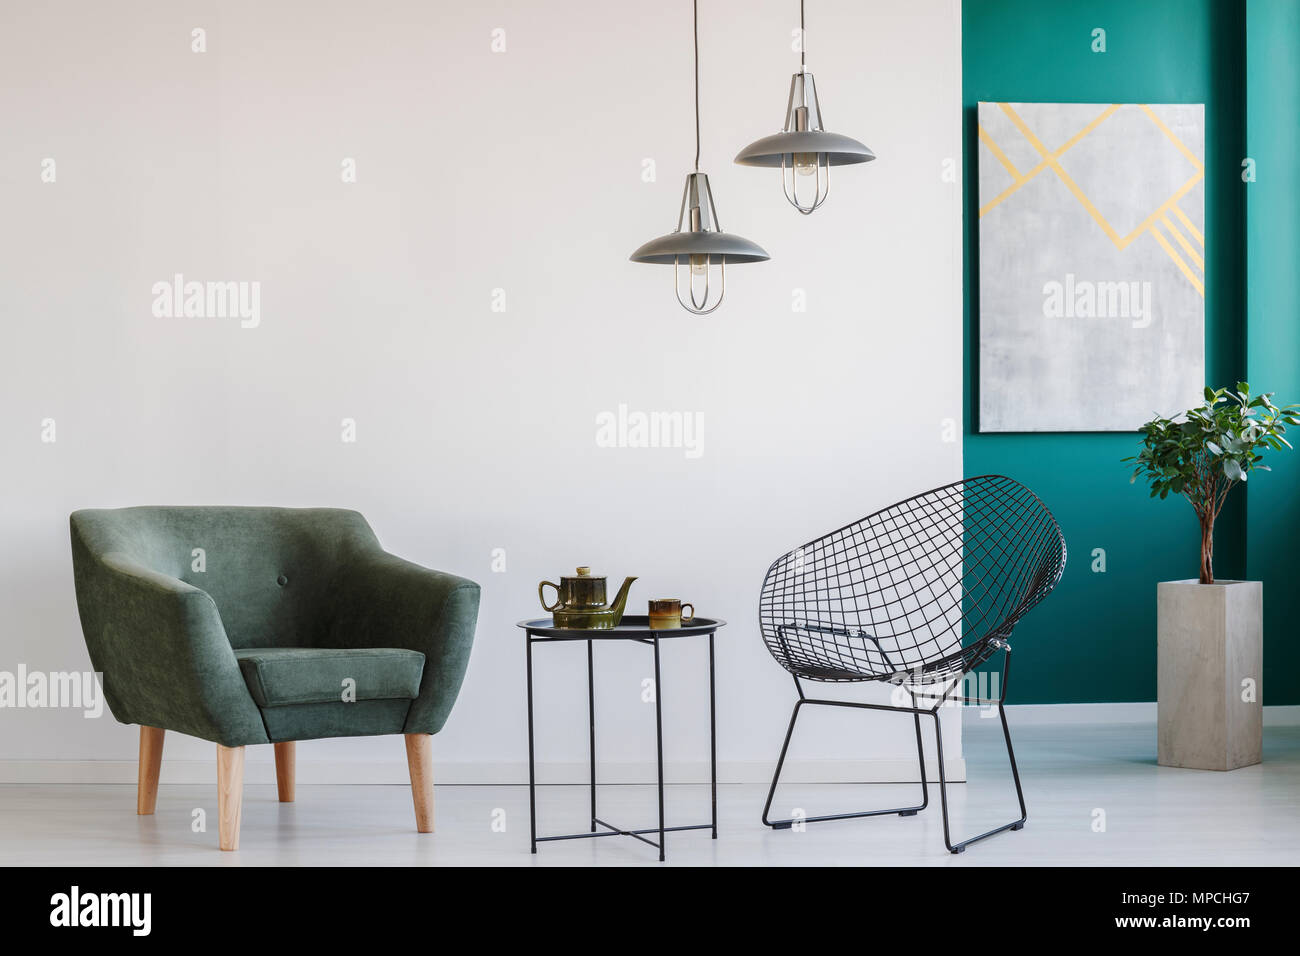 Modern living room interior with two armchairs, lamps, teapot set on ...